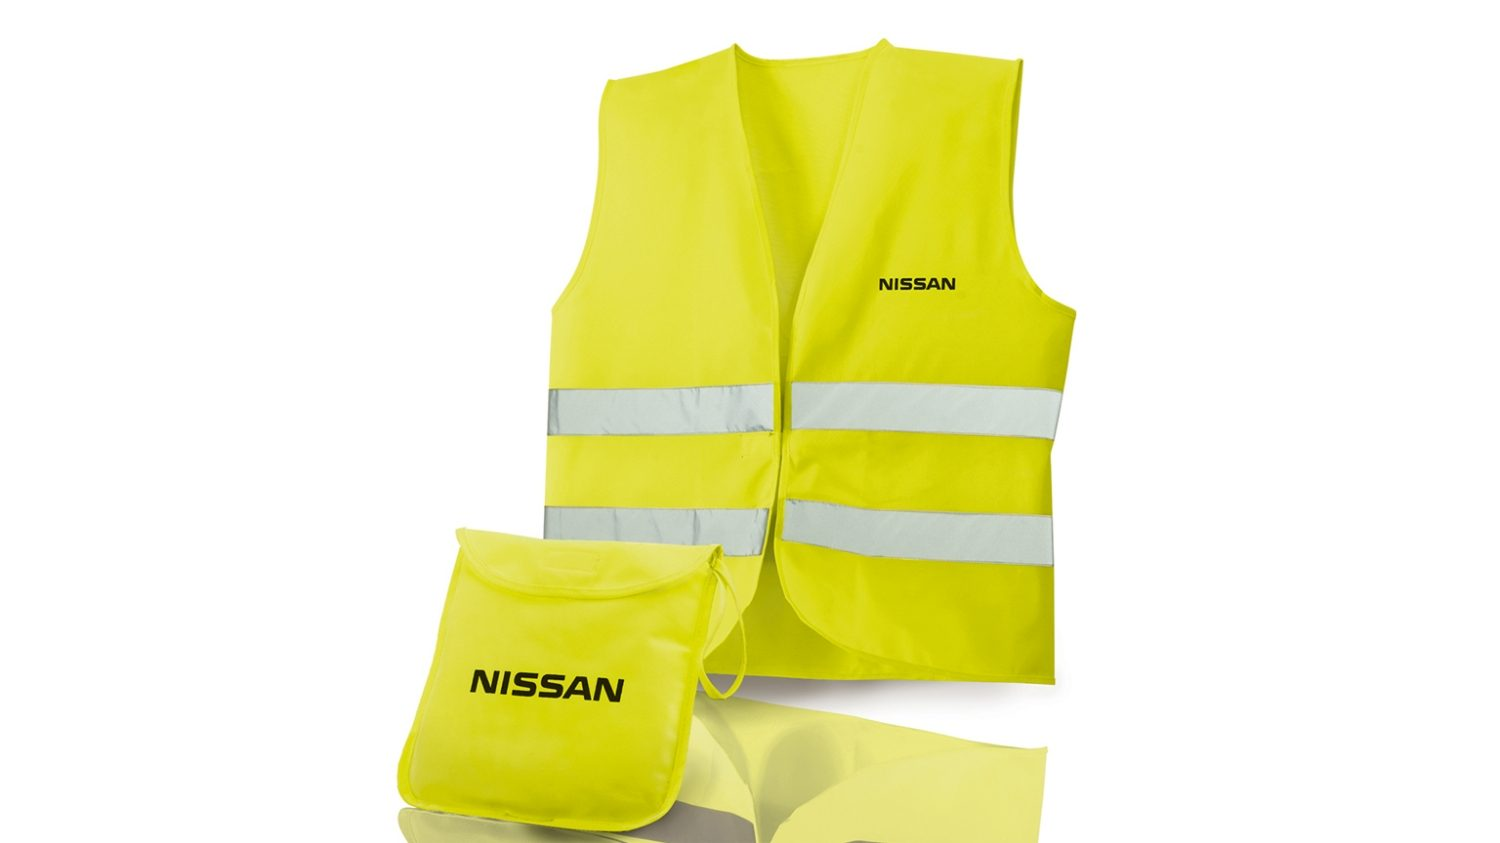 Nissan Evalia - Safety - Safety jacket